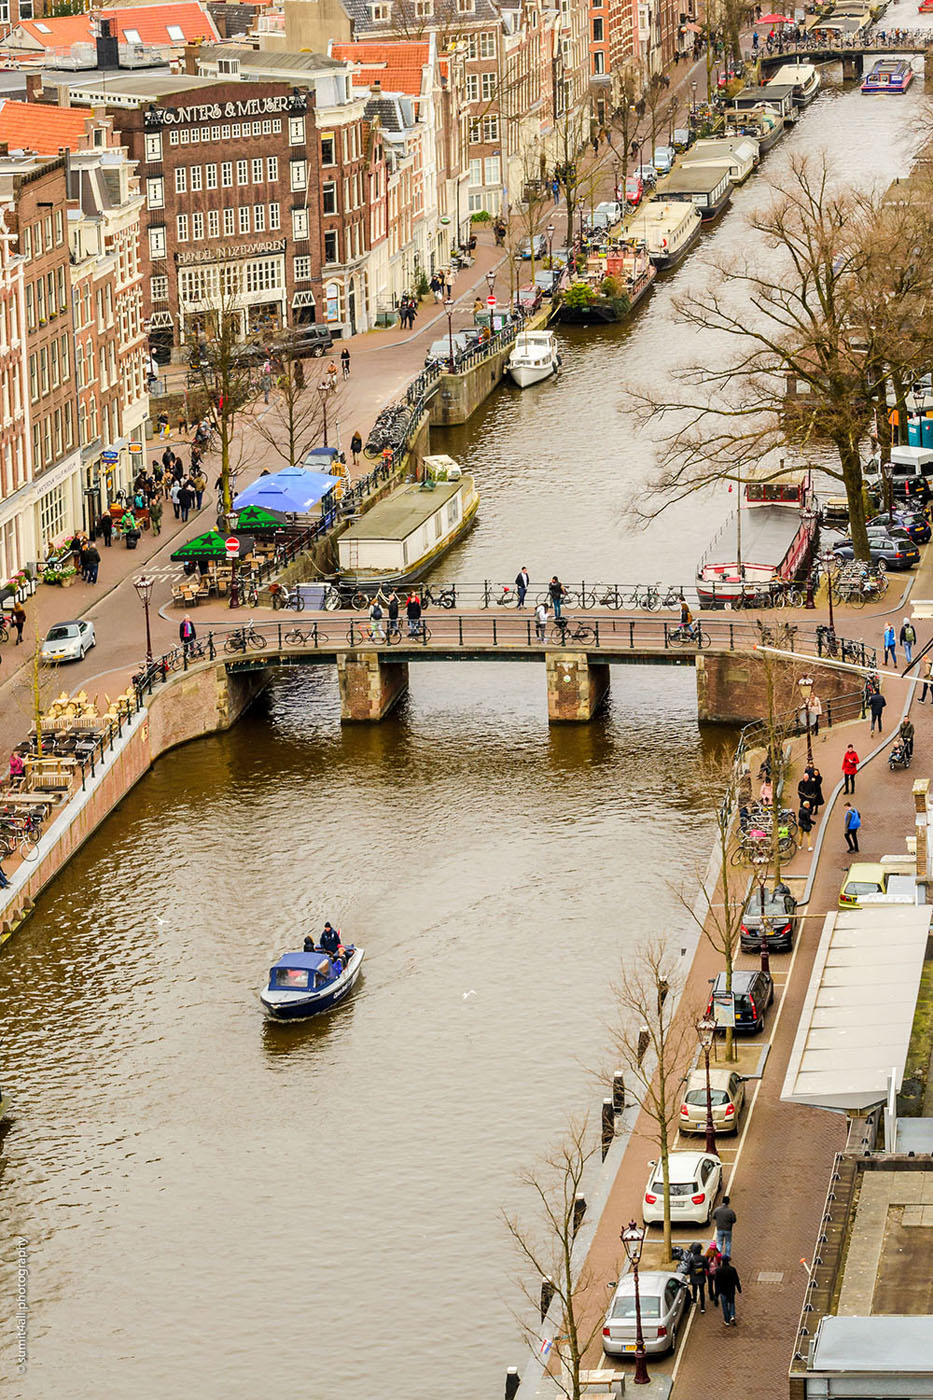 A Boat in the Prinsengracht Canal, Amsterdam